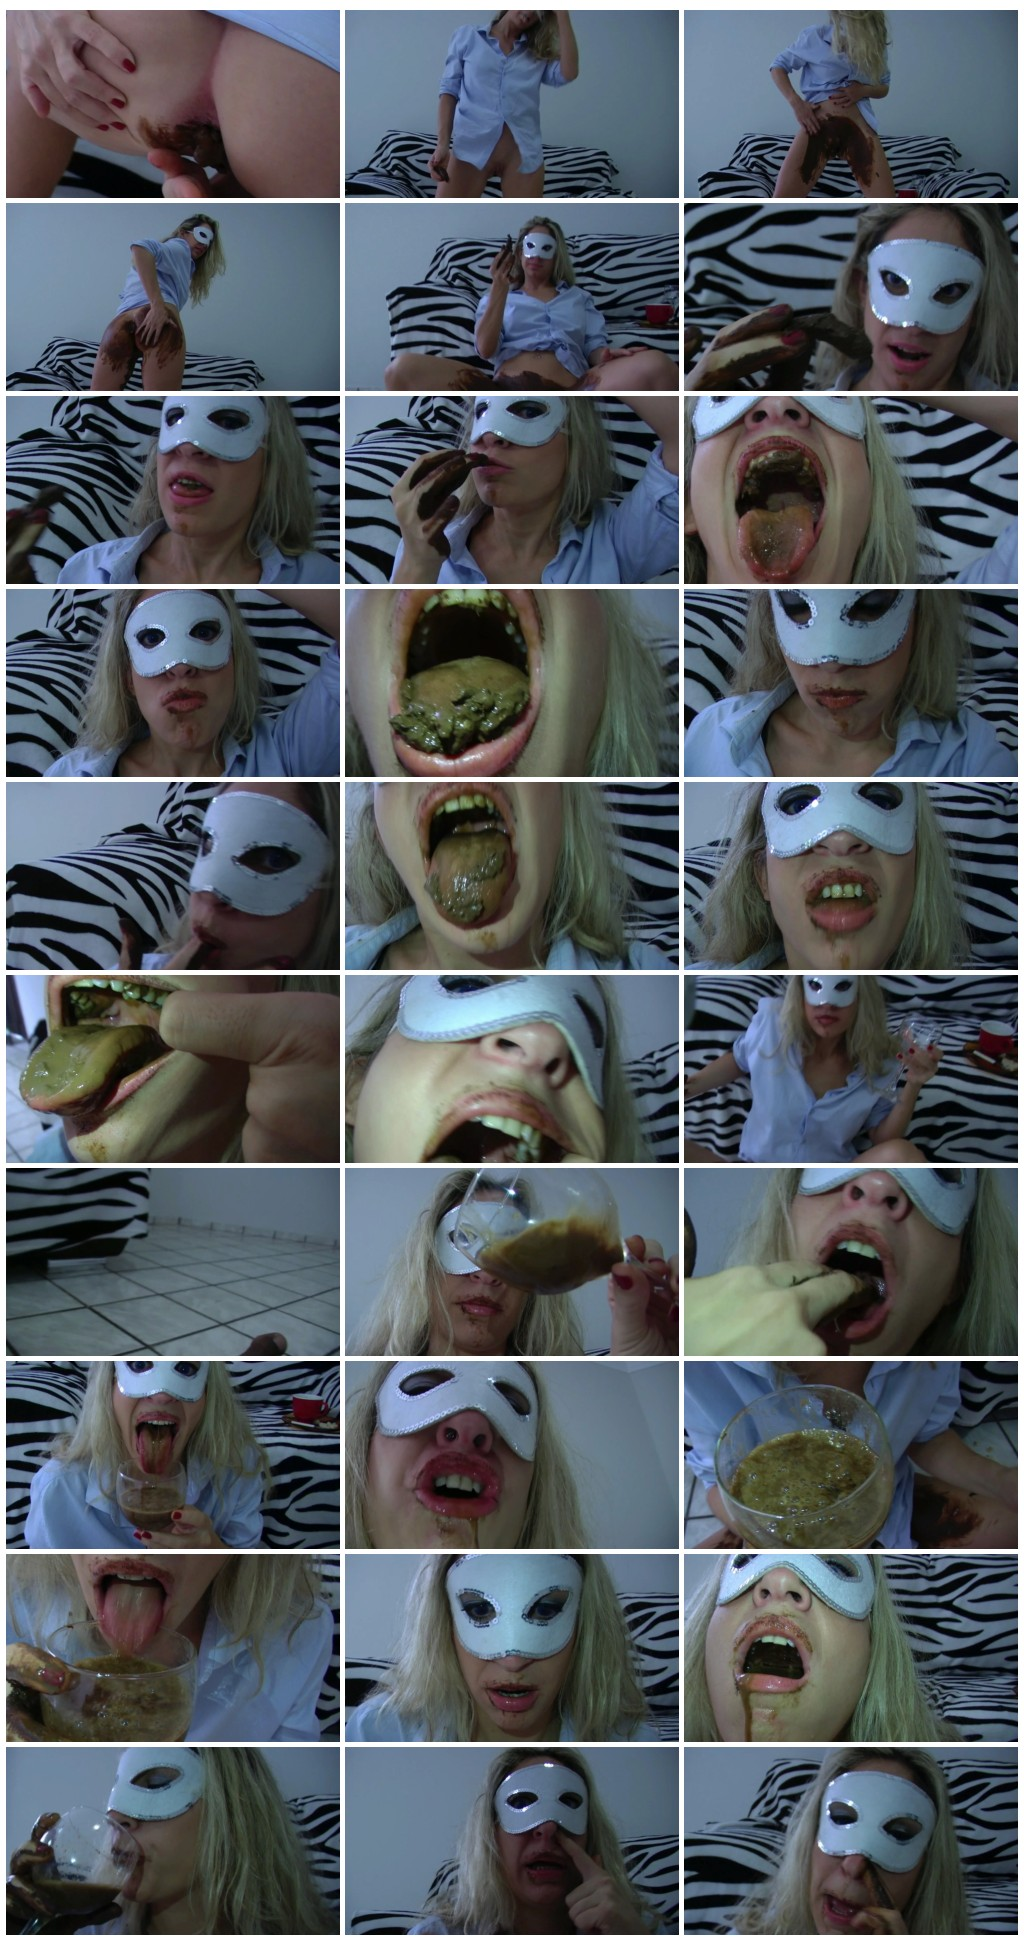 Mina Breakfast of Shit and Vomit. Part 2 Scat solo shit defecation MasturbationEat shit thumb - Mina -Breakfast of Shit and Vomit  Part 2 [Scat solo, shit, defecation, Masturbation,Eat shit]